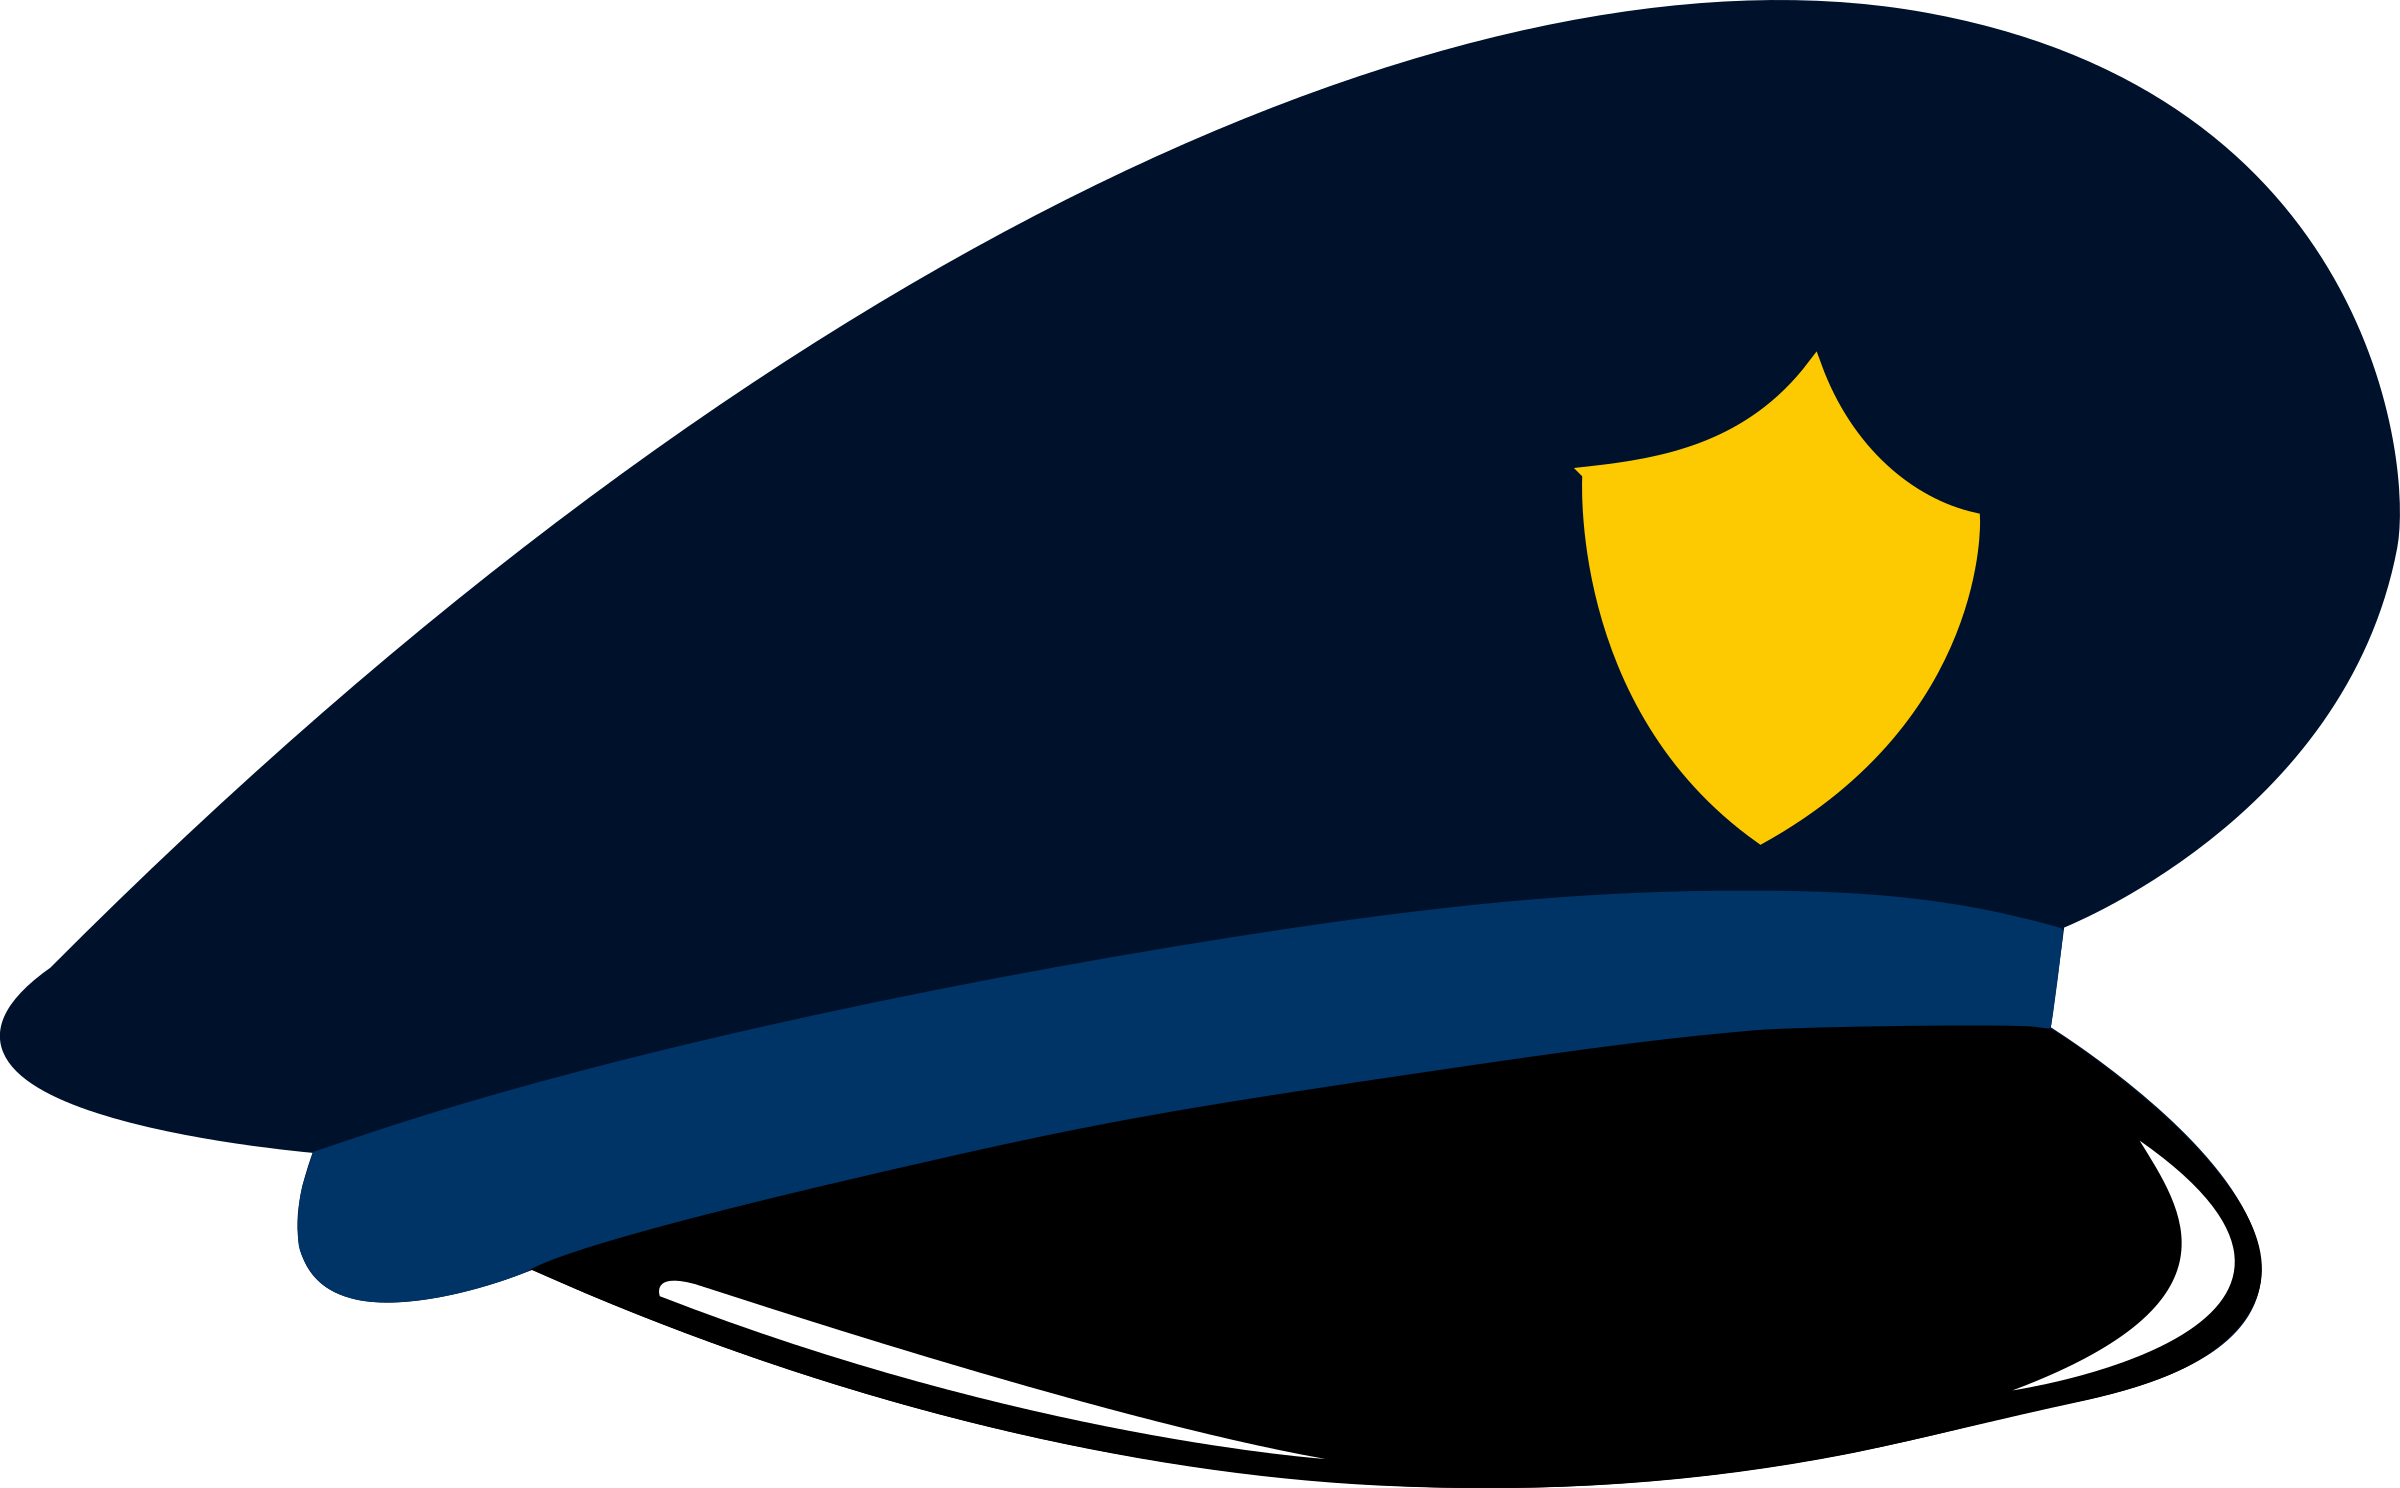 collection of police. Hats clipart state trooper